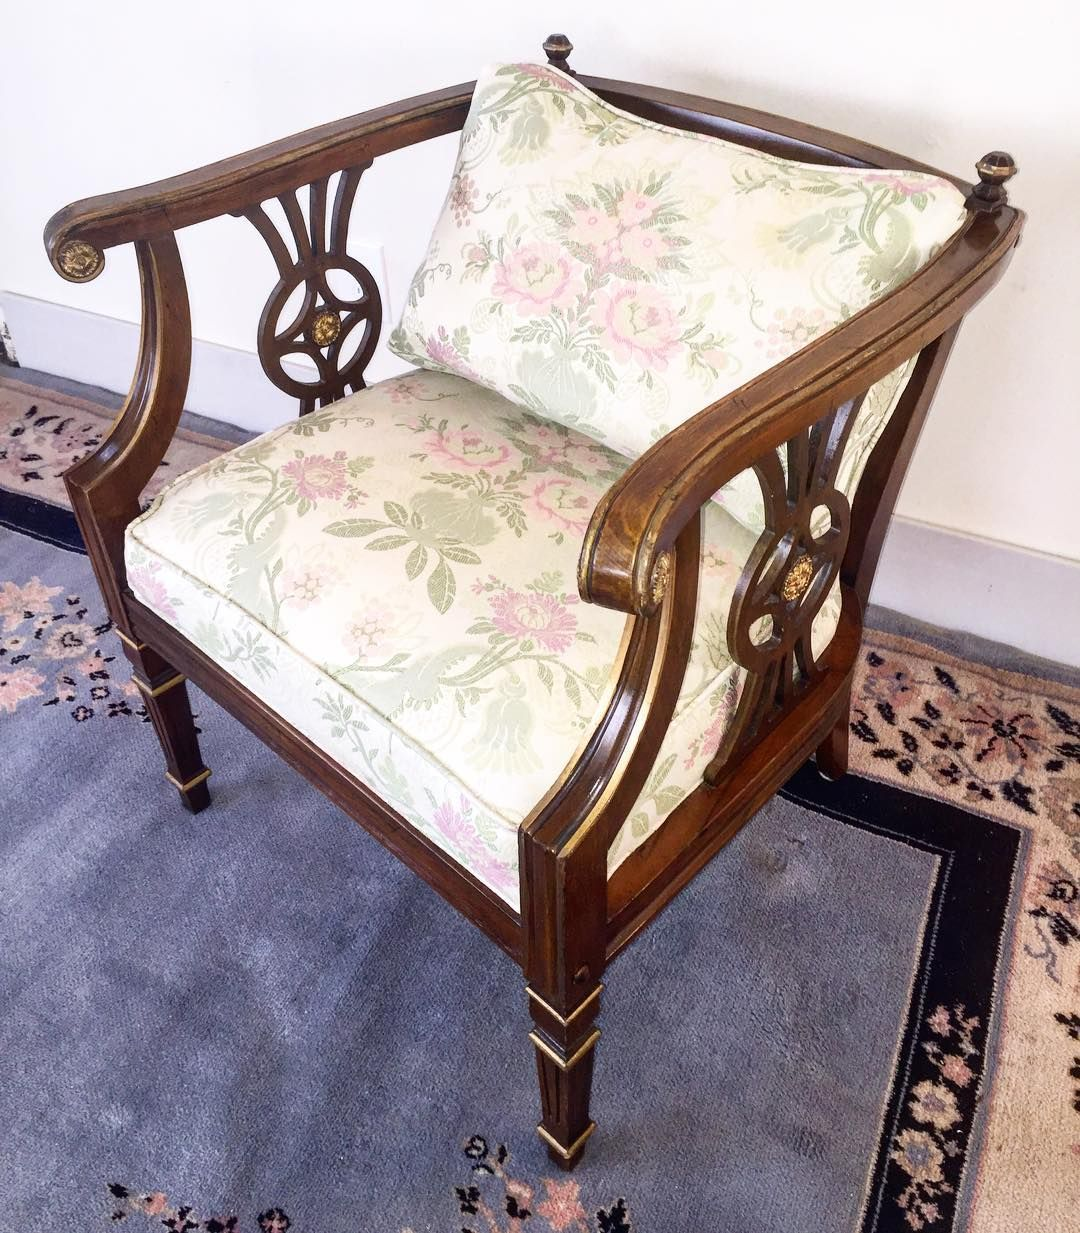 """Ornate wood frame with painted gold highlights. Spotless seat and back cushions with pink and green floral upholstery. 28""""tall 26""""wide 25""""deep seat is 19"""" from the floor. $55. Local Delivery available. #chair #seating #interiors #homedecor #floral #furniture #lunas_treasures by lunas_treasures"""